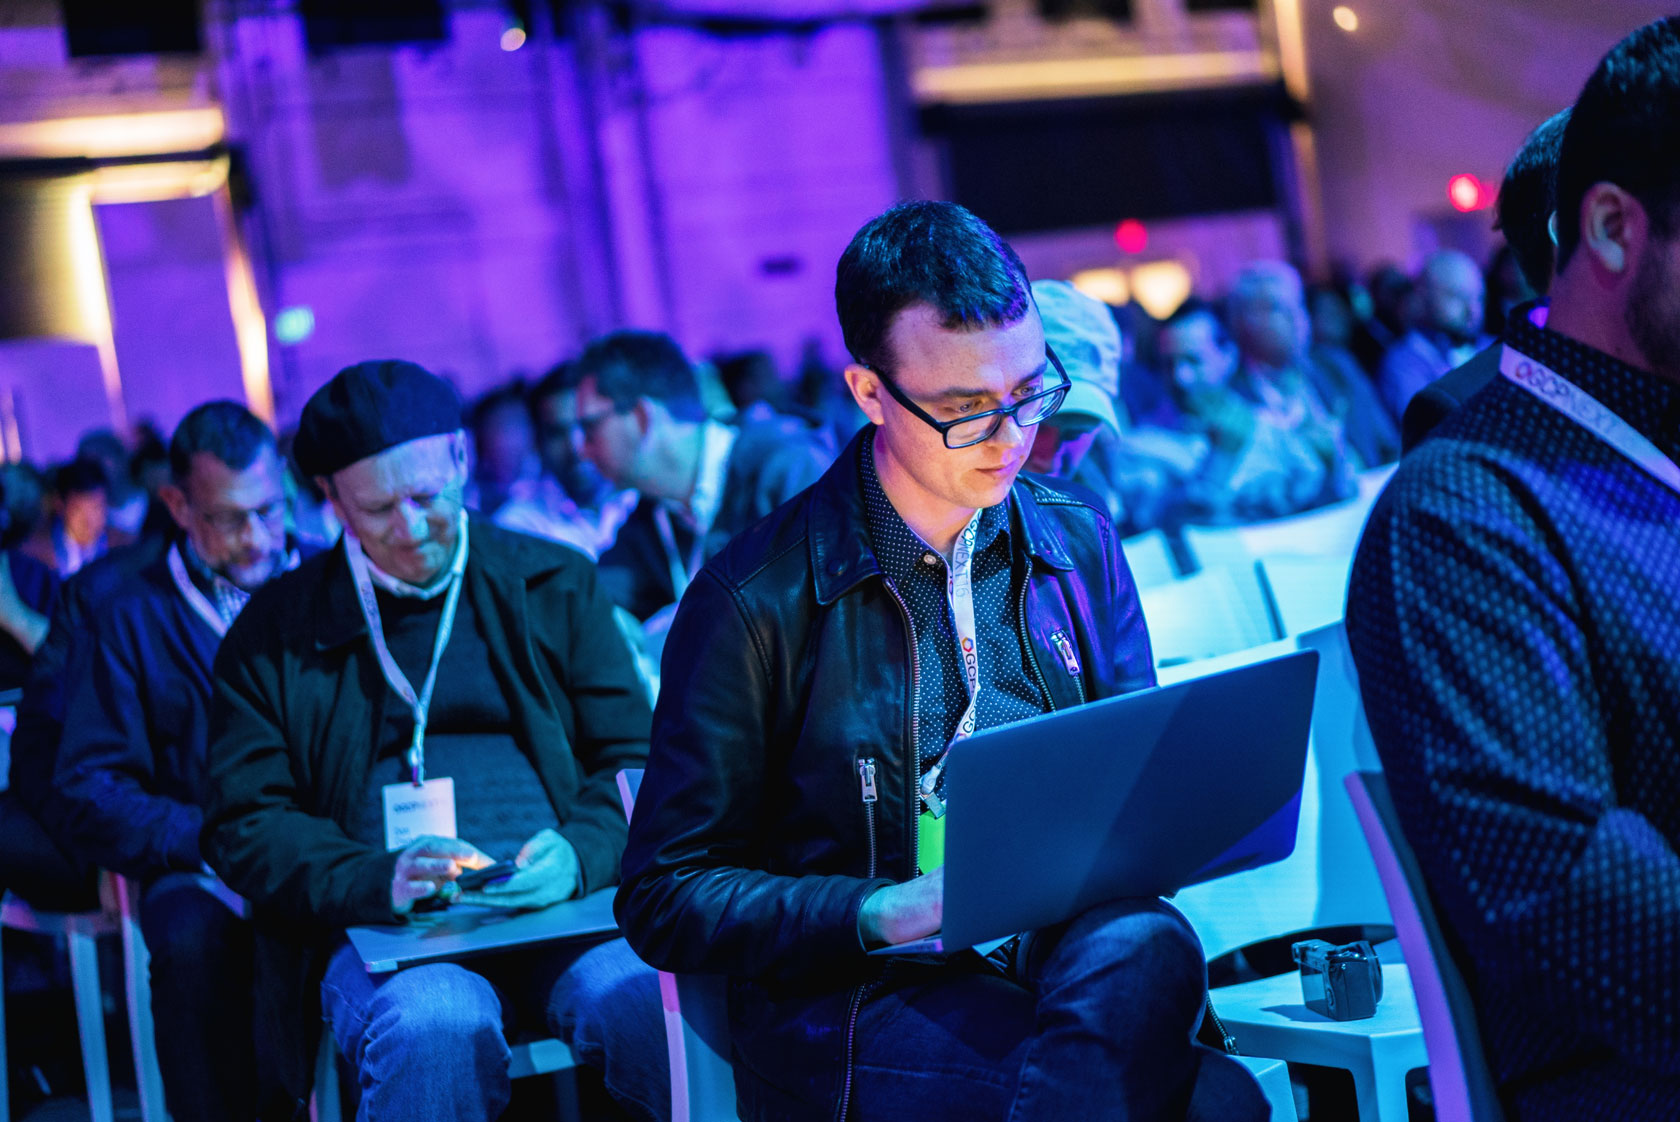 Young man attended Google conference